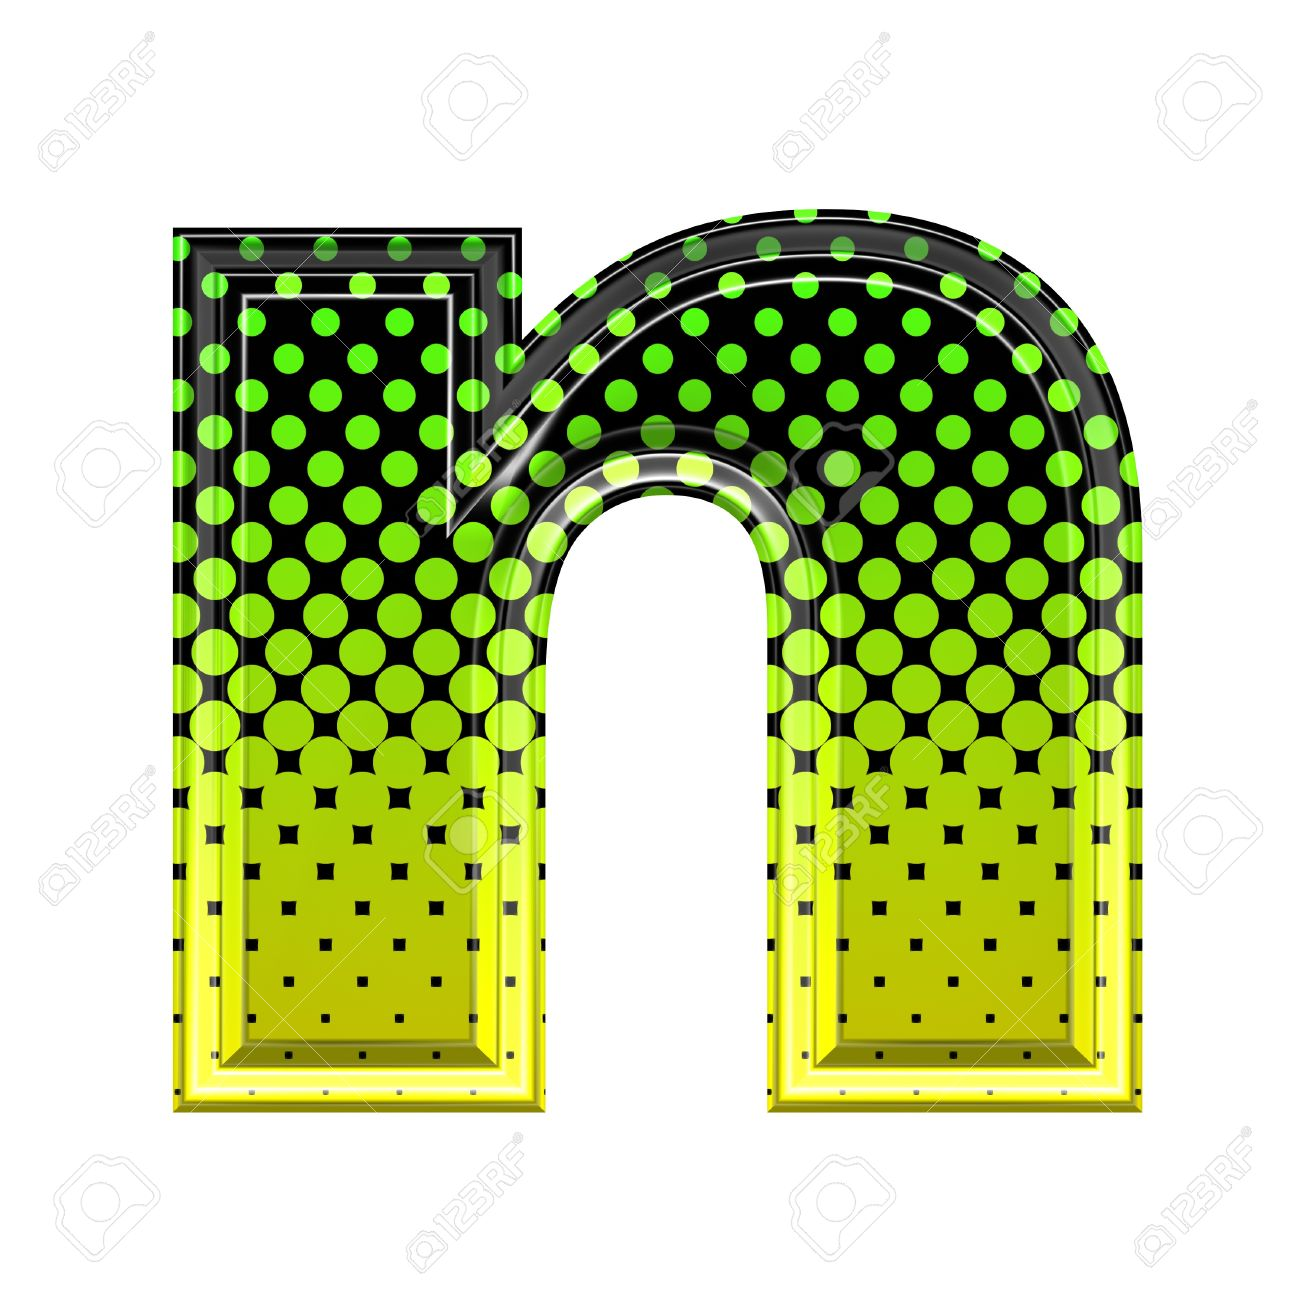 hight resolution of happy birthday bubble letters 150035 letter n happy birthday